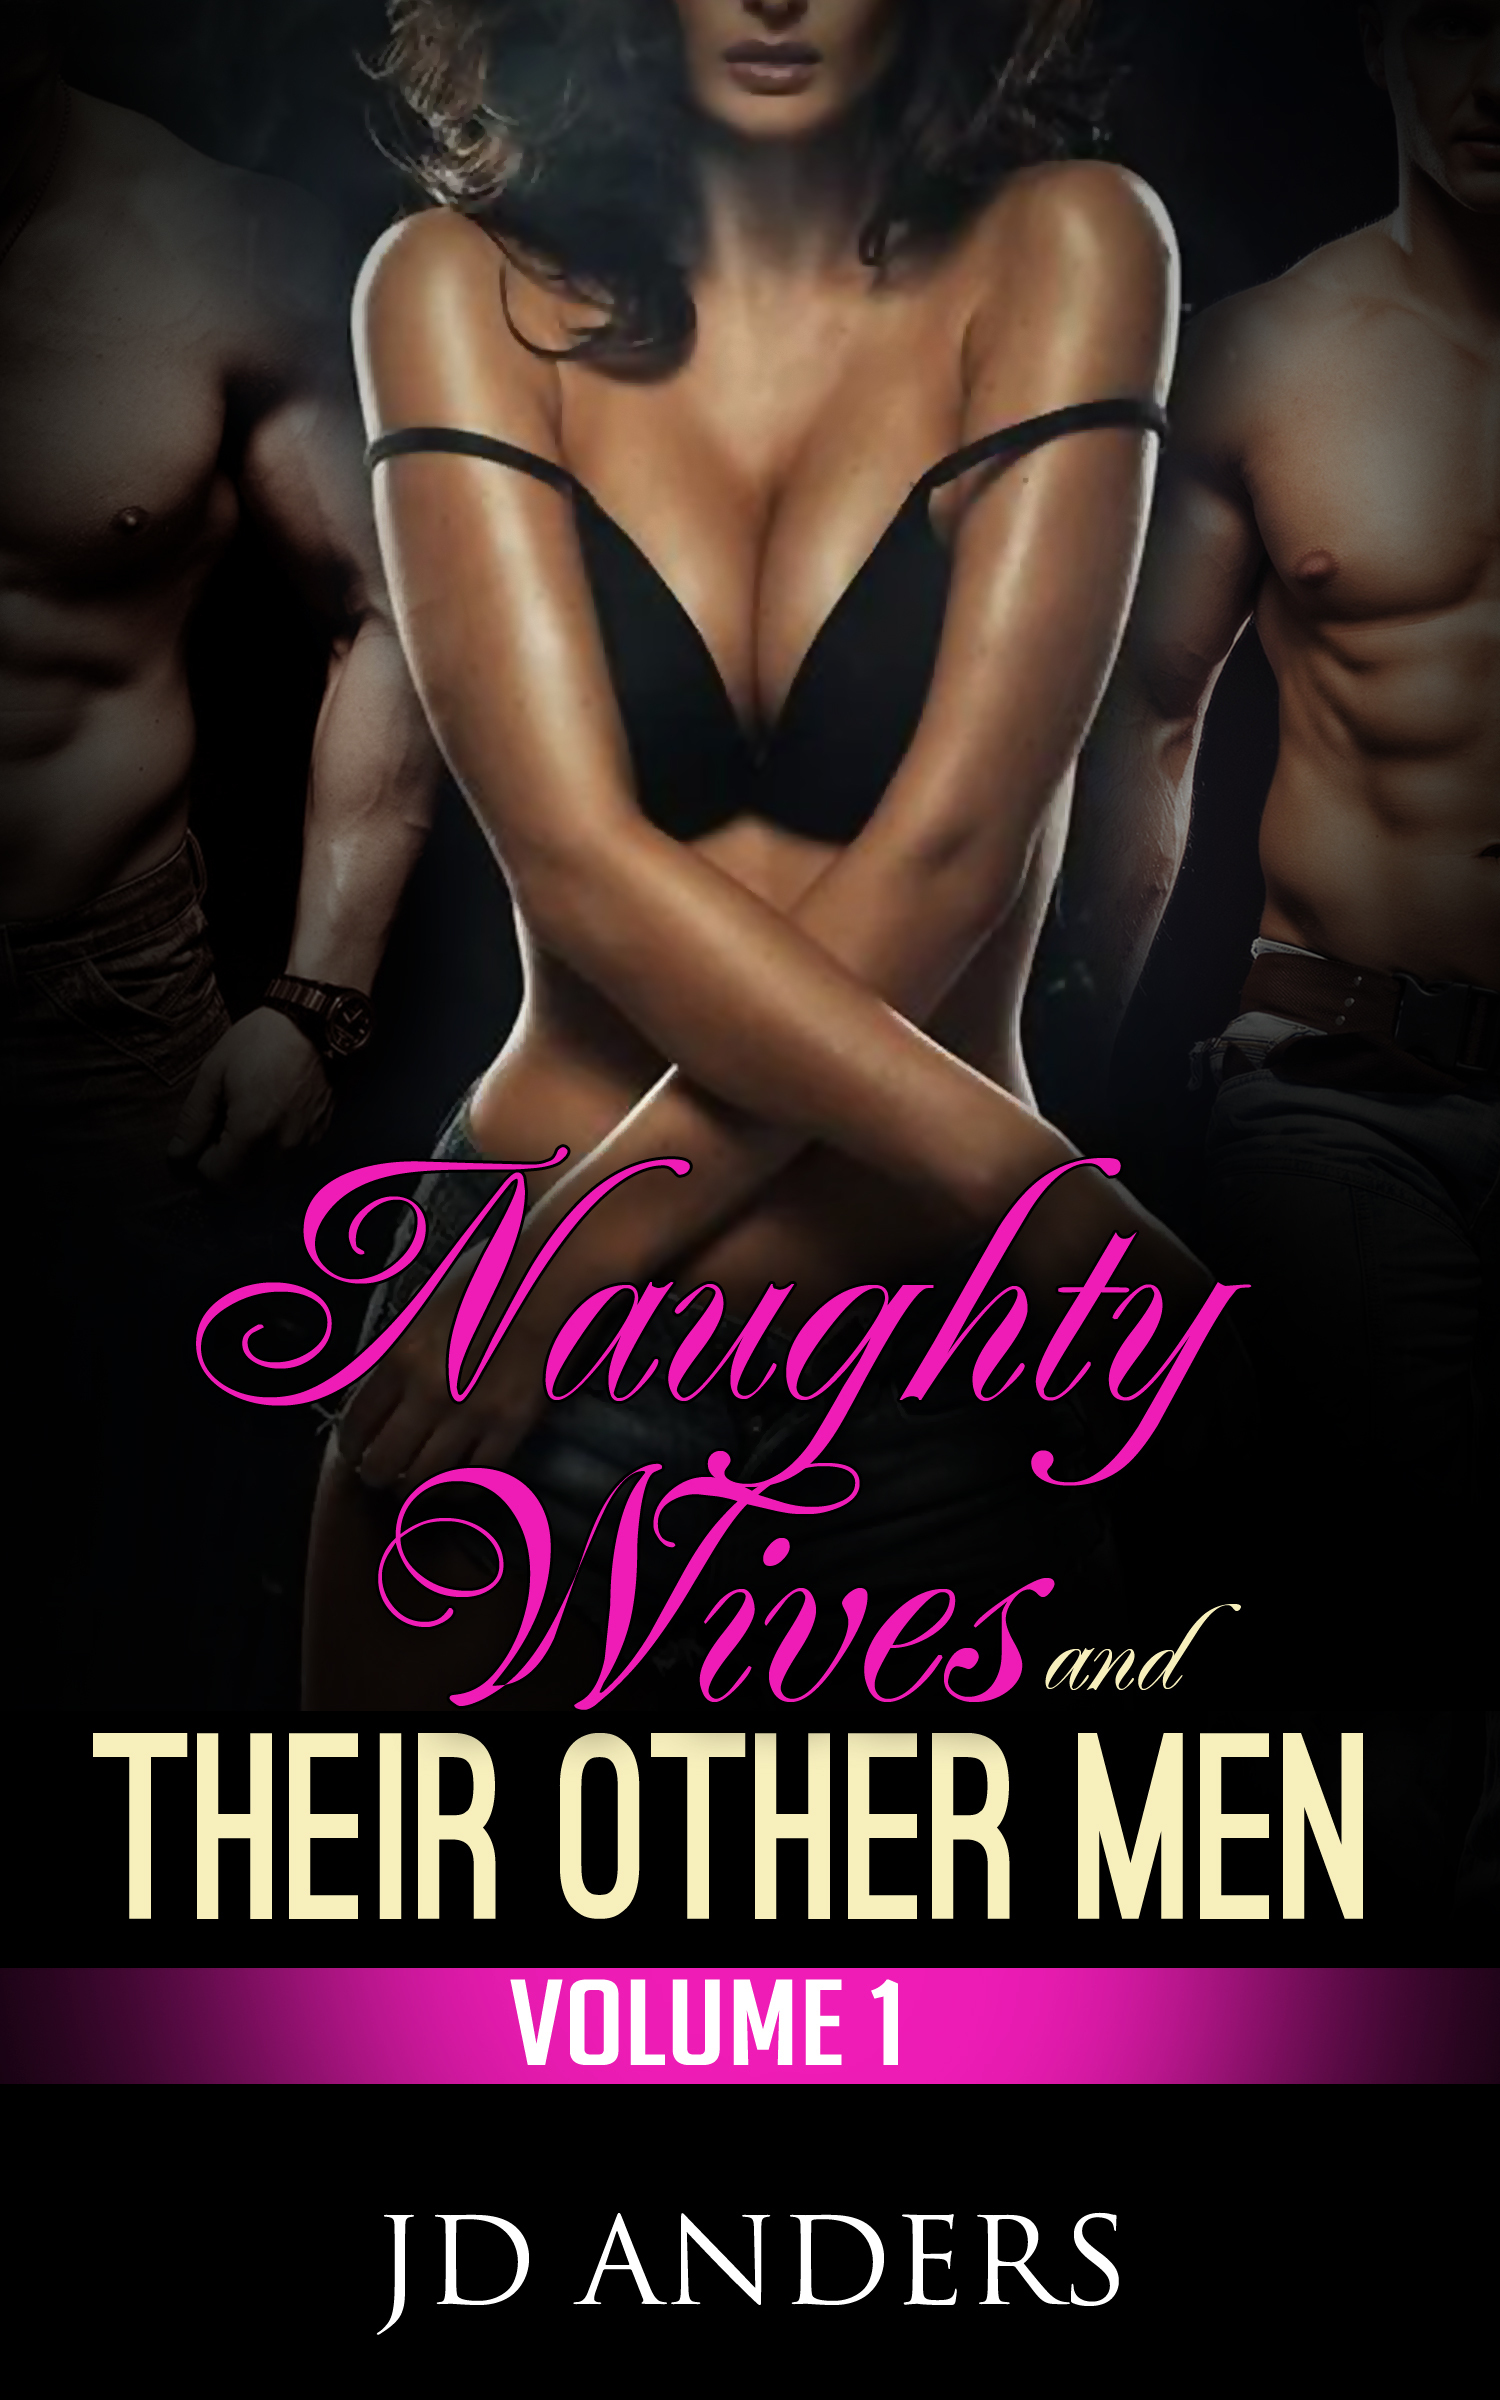 Naughty Wives and Their Other Men J.D. Anders